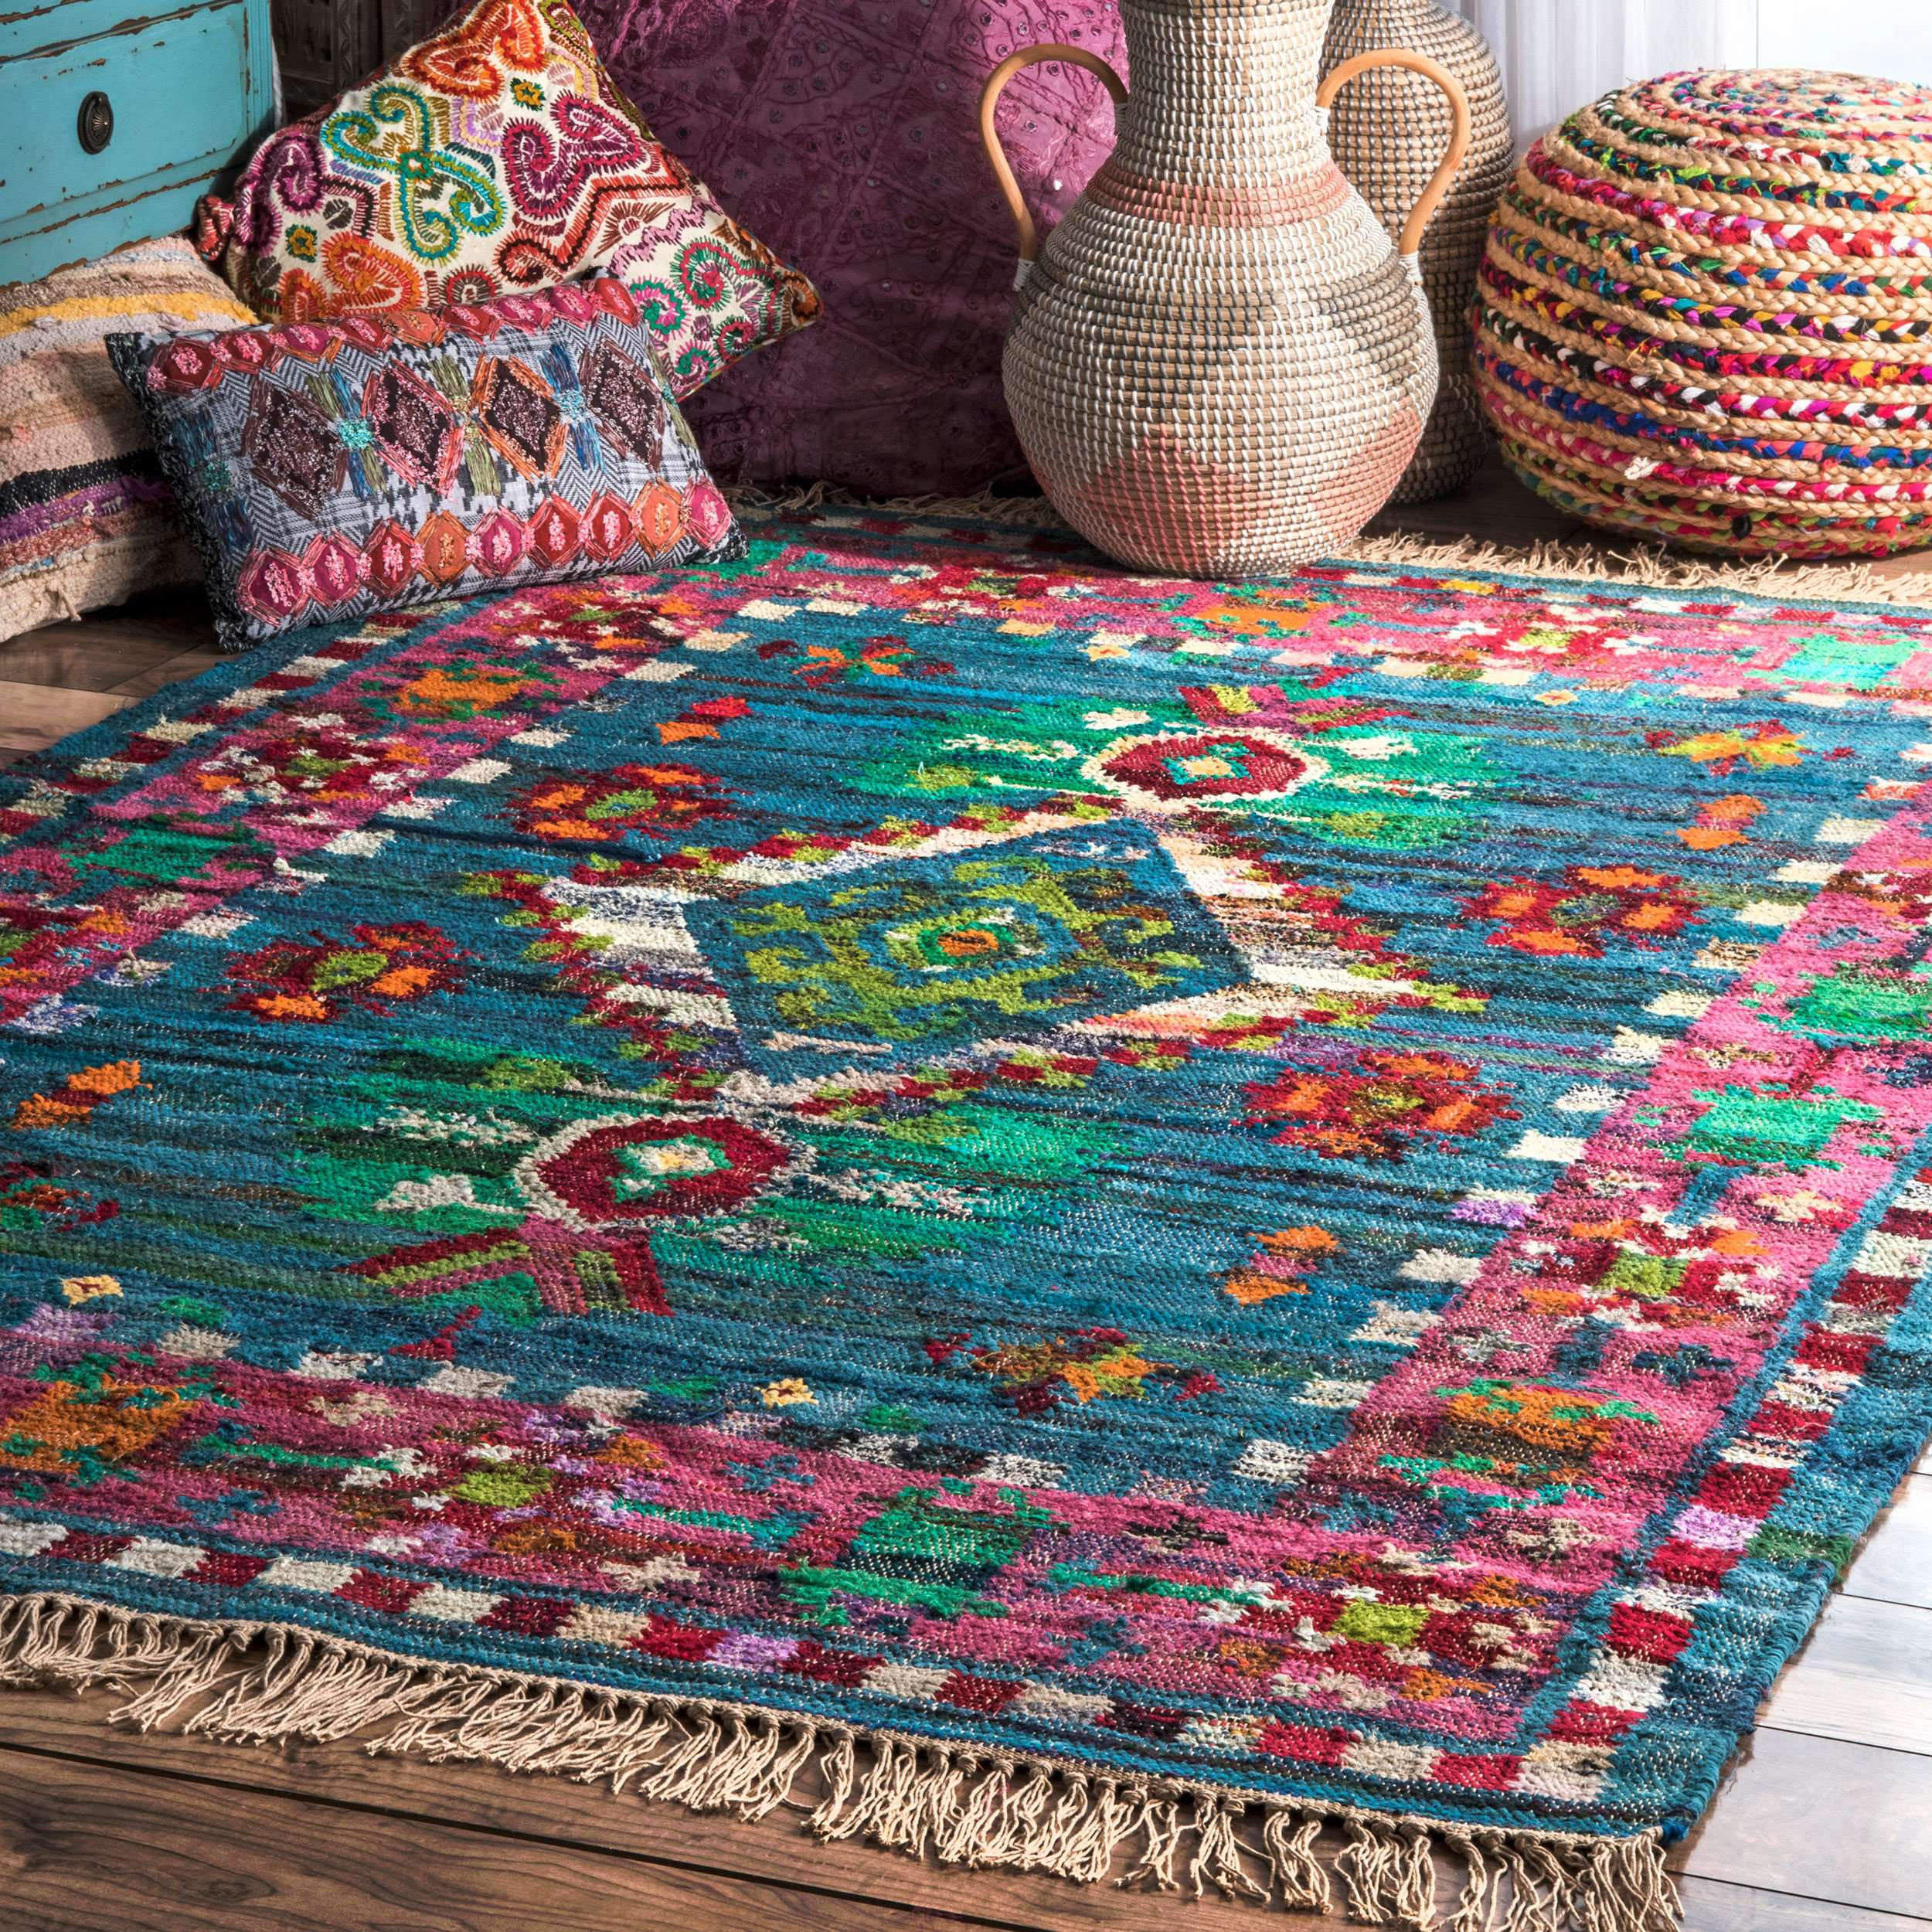 bohemian living room earlam our susan manchester a for rug